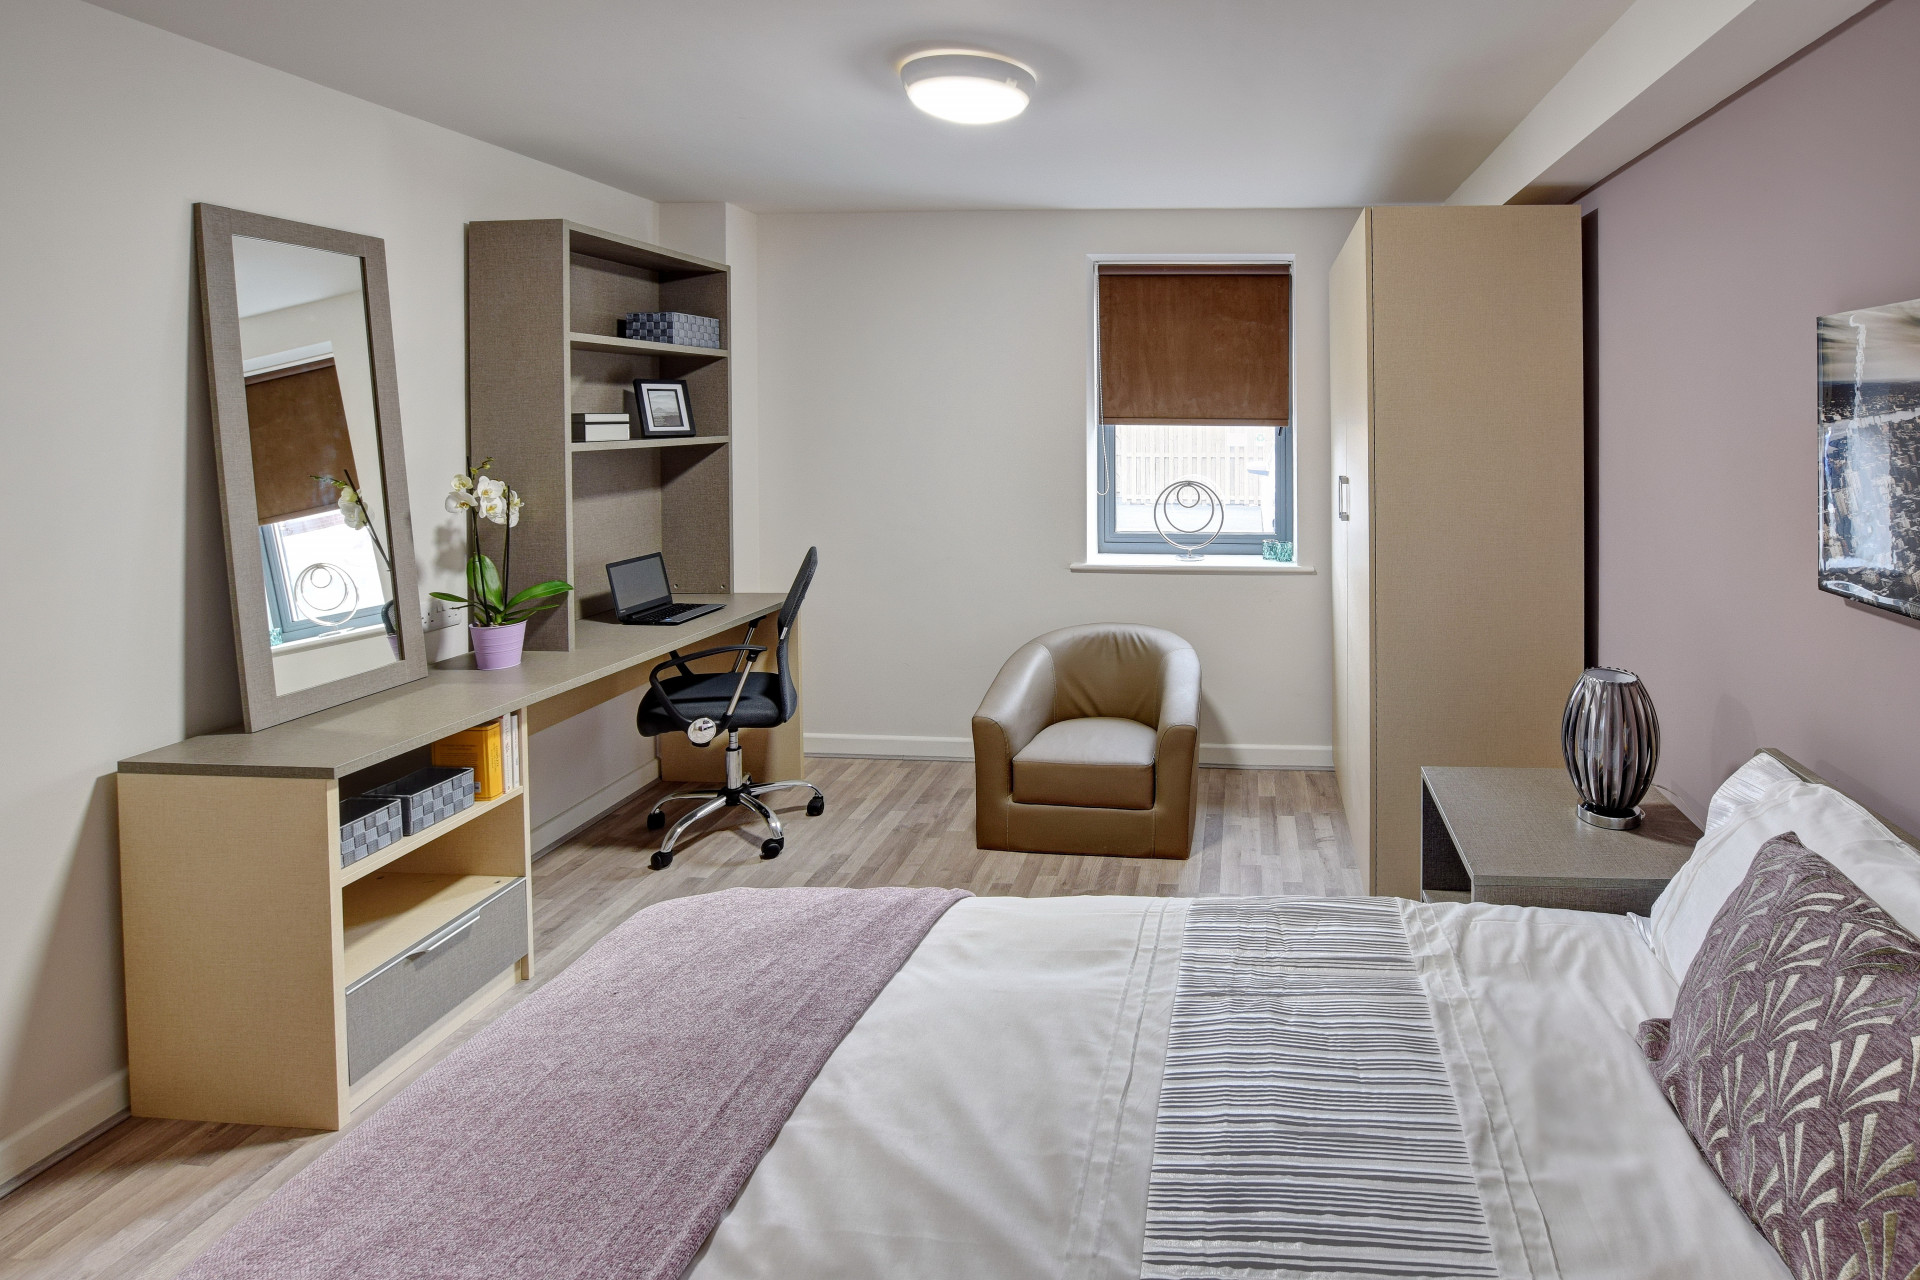 One Bed Flat Leeds 1 Bed Student Flat In Leeds Apartment Premium Deluxe Holborn